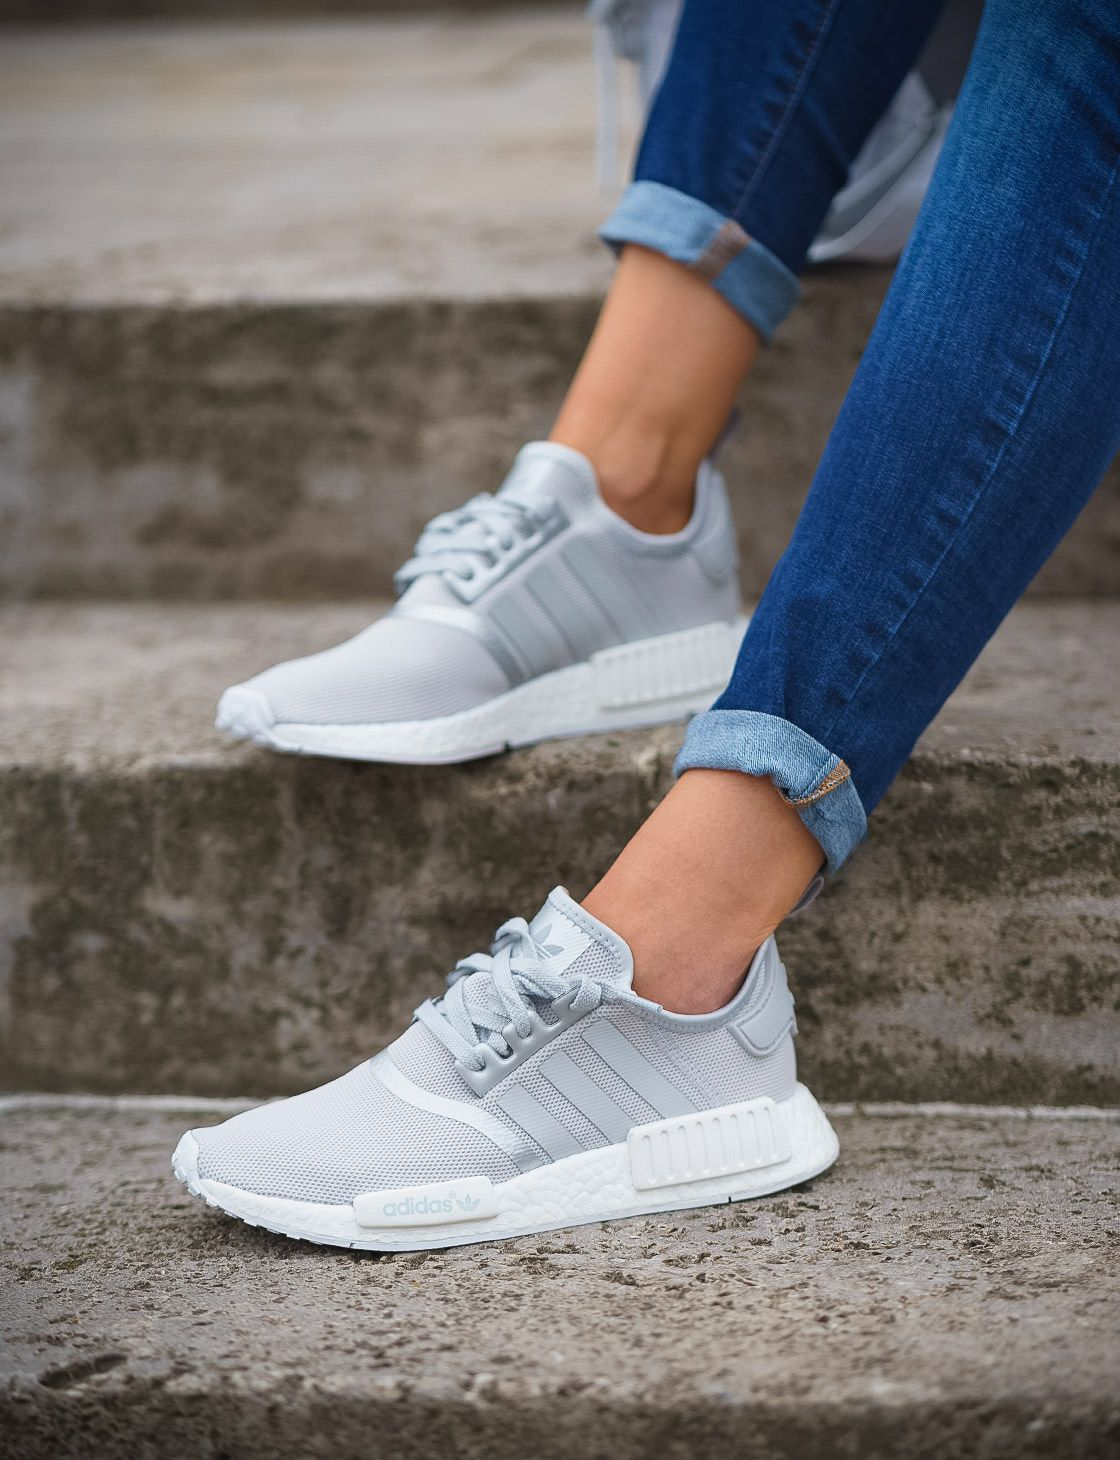 new styles bffea 216be Adidas Originals NMD R1 S76004 Sneaker in grau, weiß, silber Clothing,  Shoes   Jewelry   Women   adidas shoes amzn.to 2j5OwIR